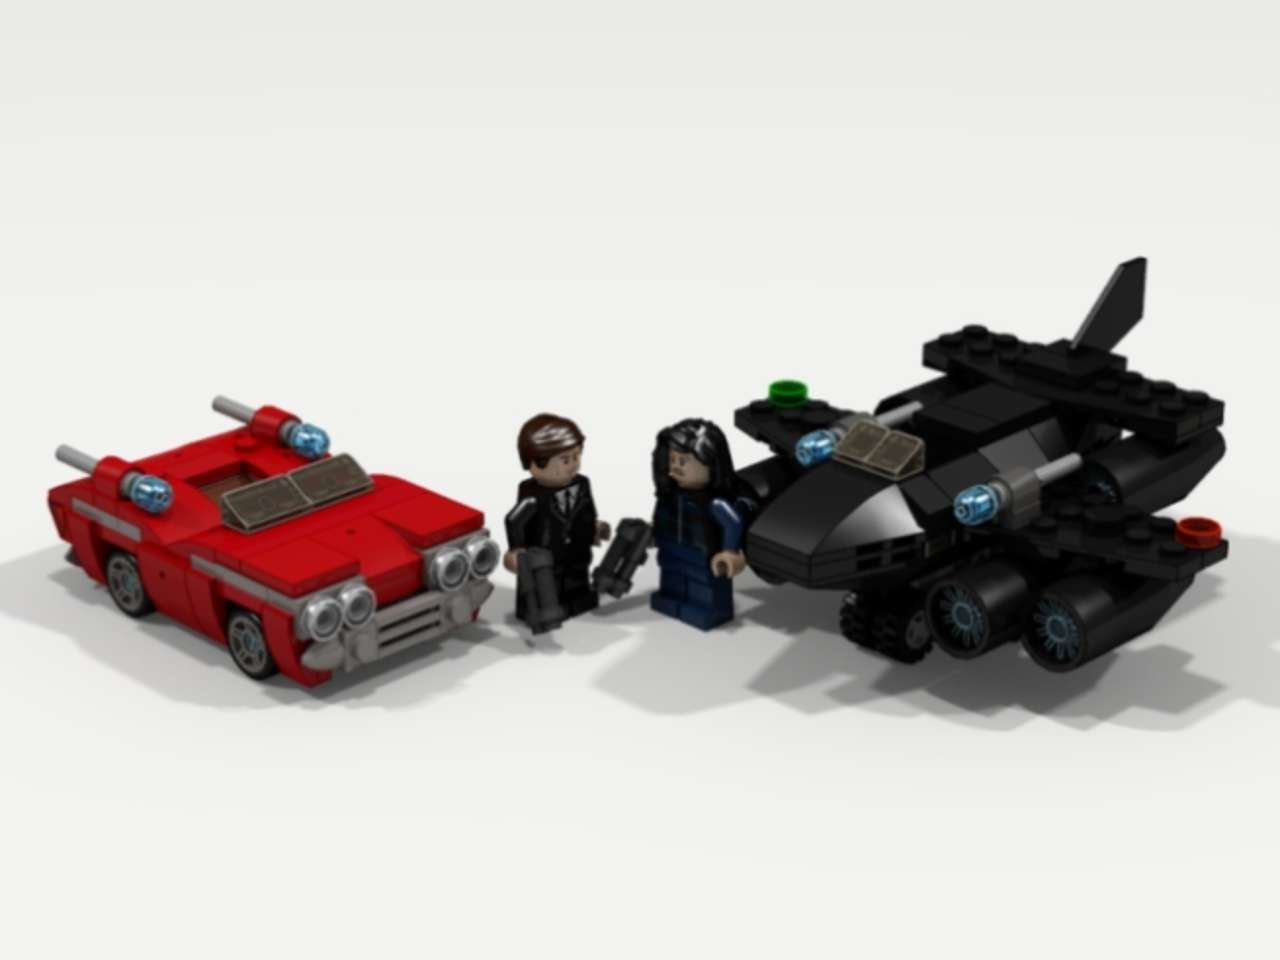 Agents Of S.H.I.E.L.D. Pitched As Lego Ideas Project